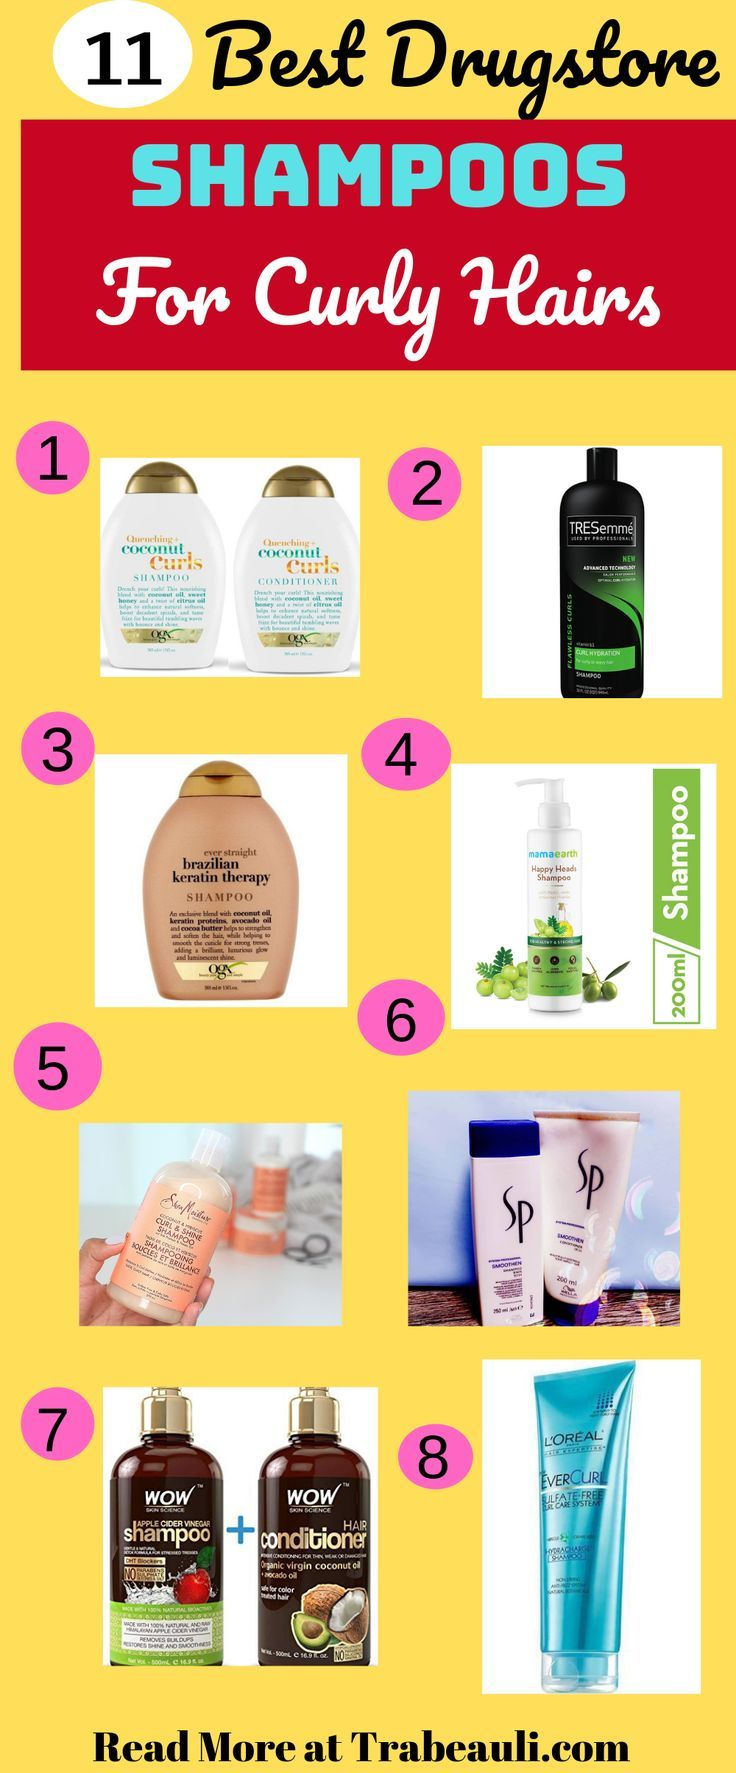 11 Best Shampoo For Curly Hair Sulfate Free In India 2019 In 2020